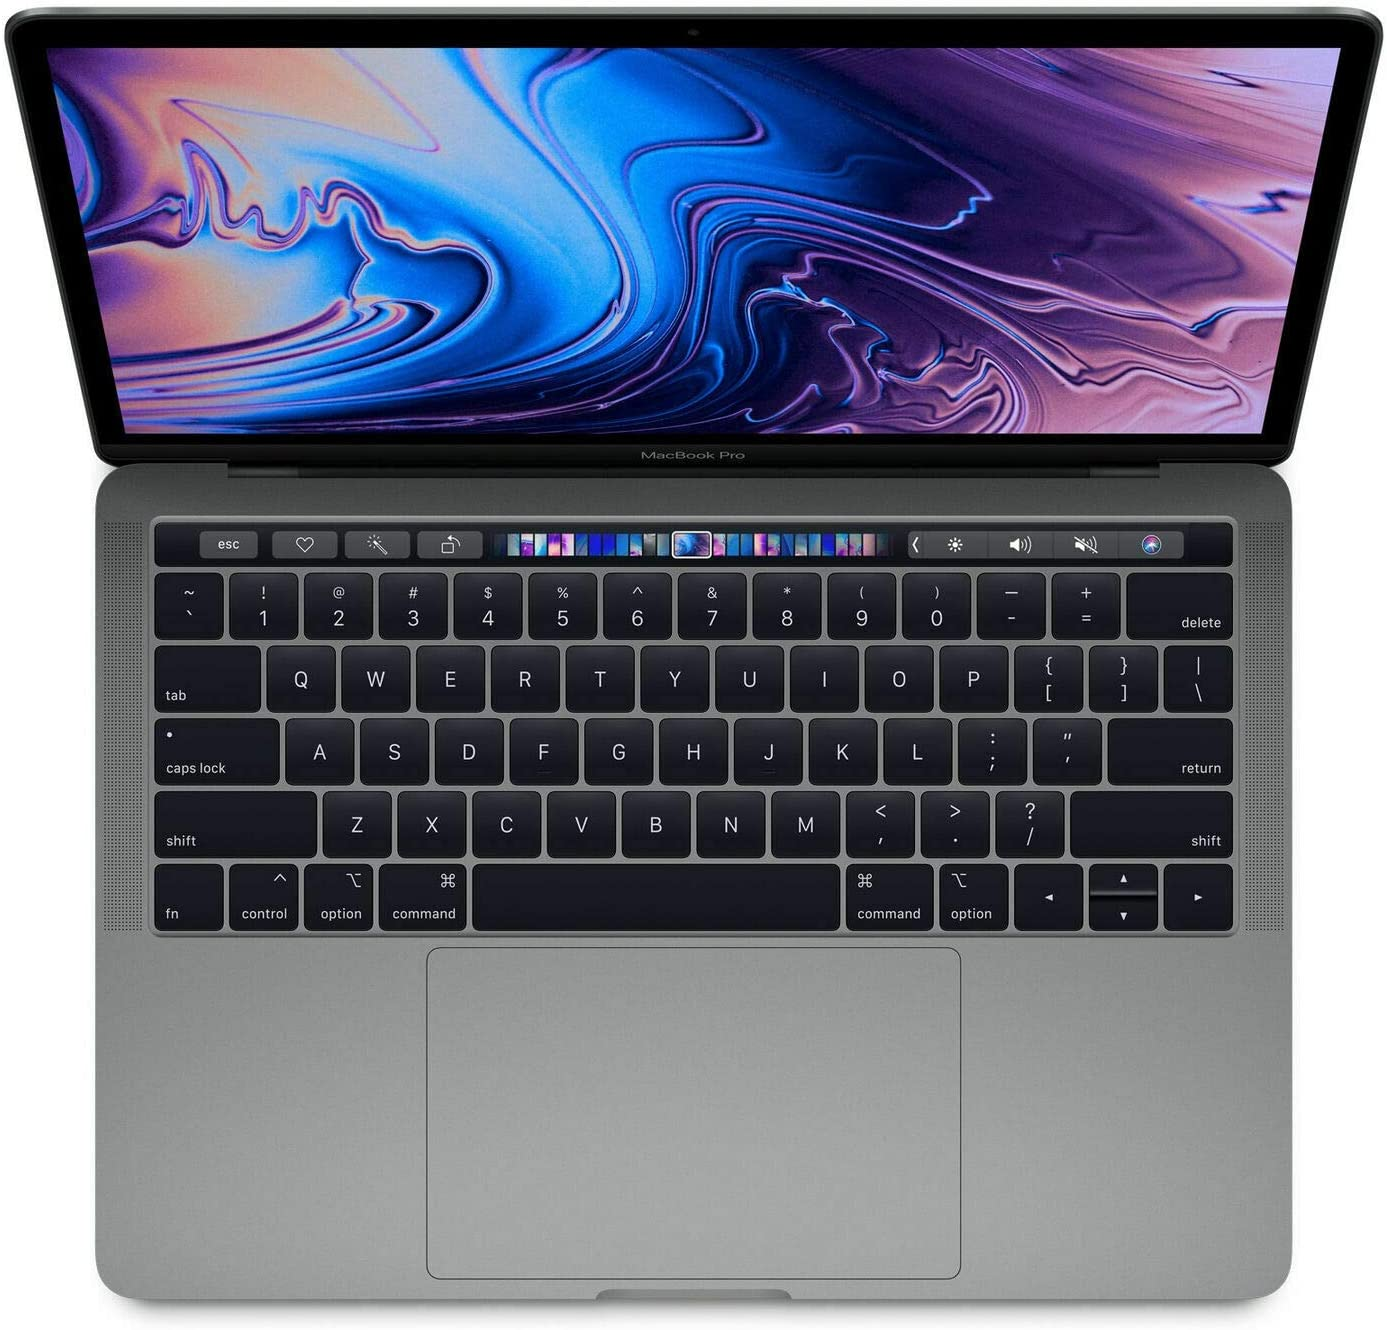 Apple MacBook Pro 13.3in MR9Q2LL/A with Touch-Bar 2018 - Intel Core i7 2.7GHz, 16GB RAM, 1TB SSD - Space Gray (Renewed)